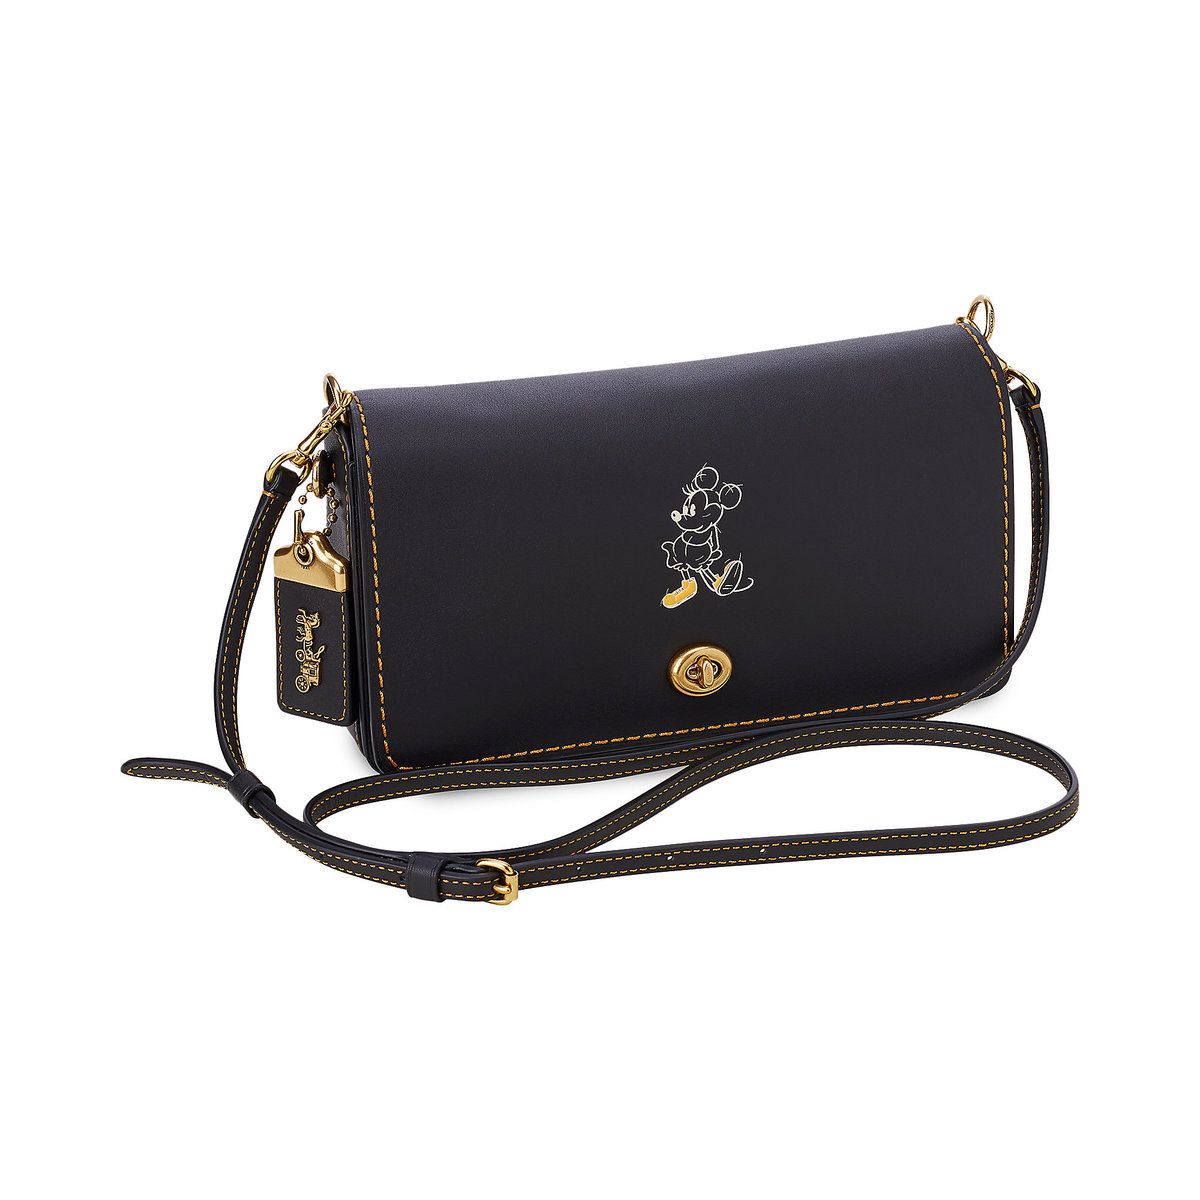 7cd7ecdcd0be Product Image of Minnie Mouse Dinky Leather Crossbody Bag by COACH   1